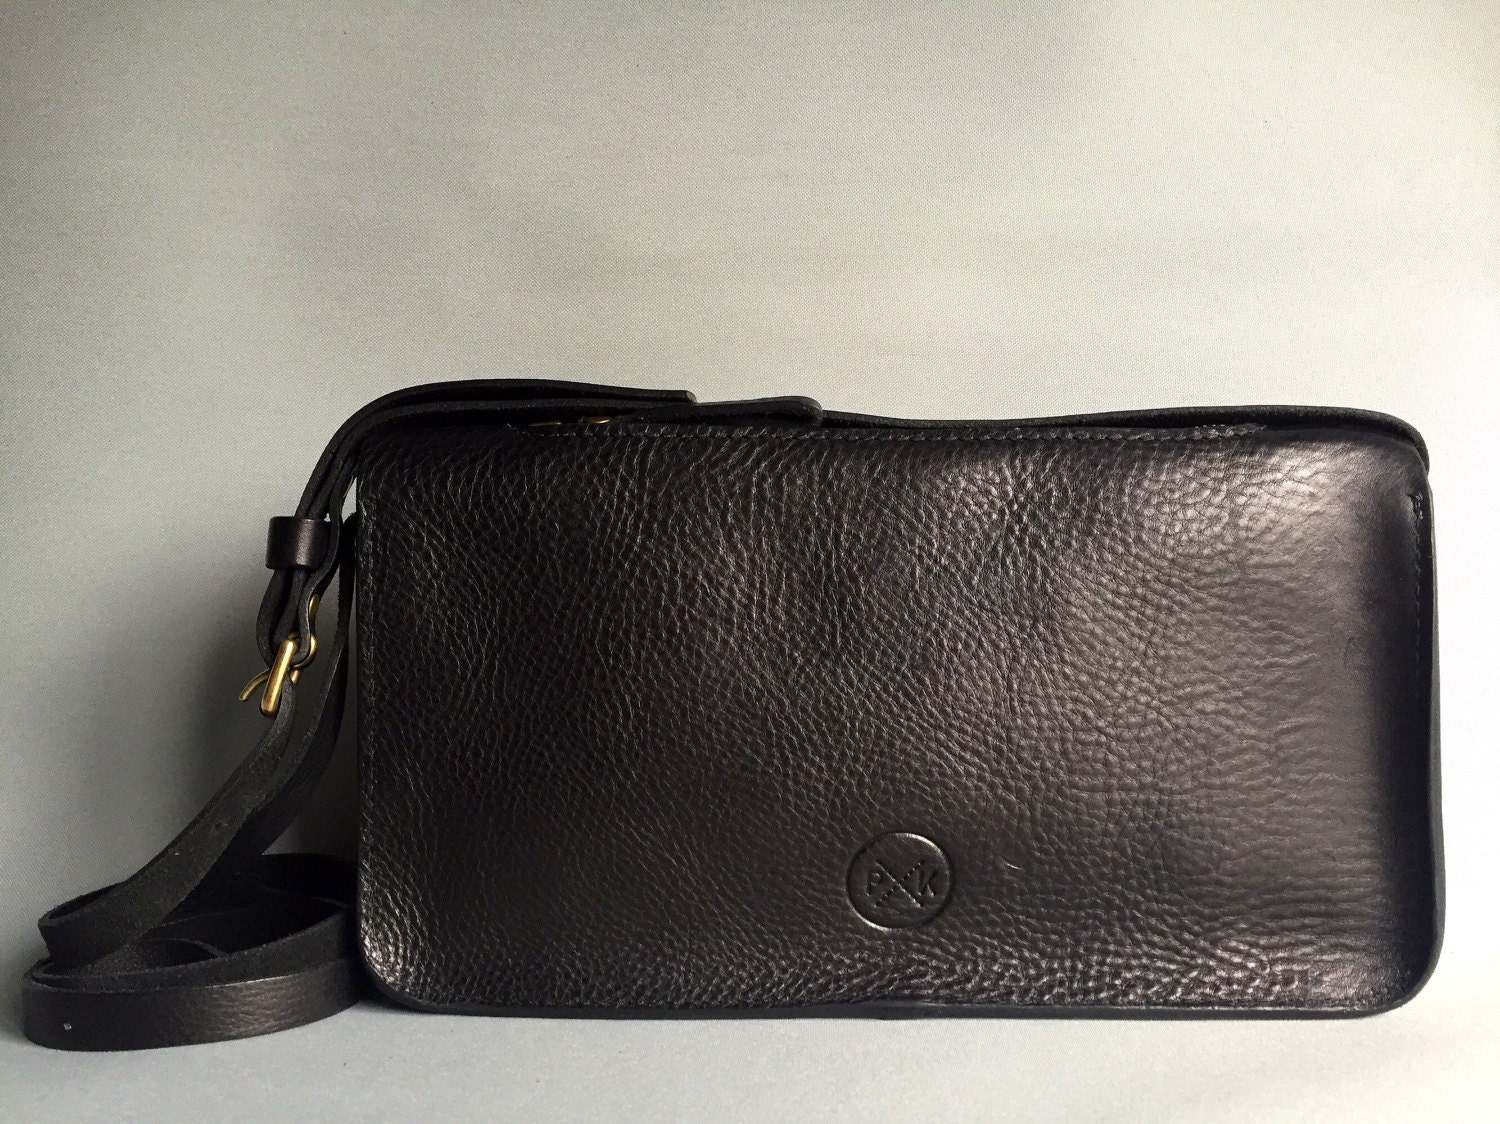 Small black leather handbag black cross body bag black shoulder bag black handbag small black purse gift for her leather purse